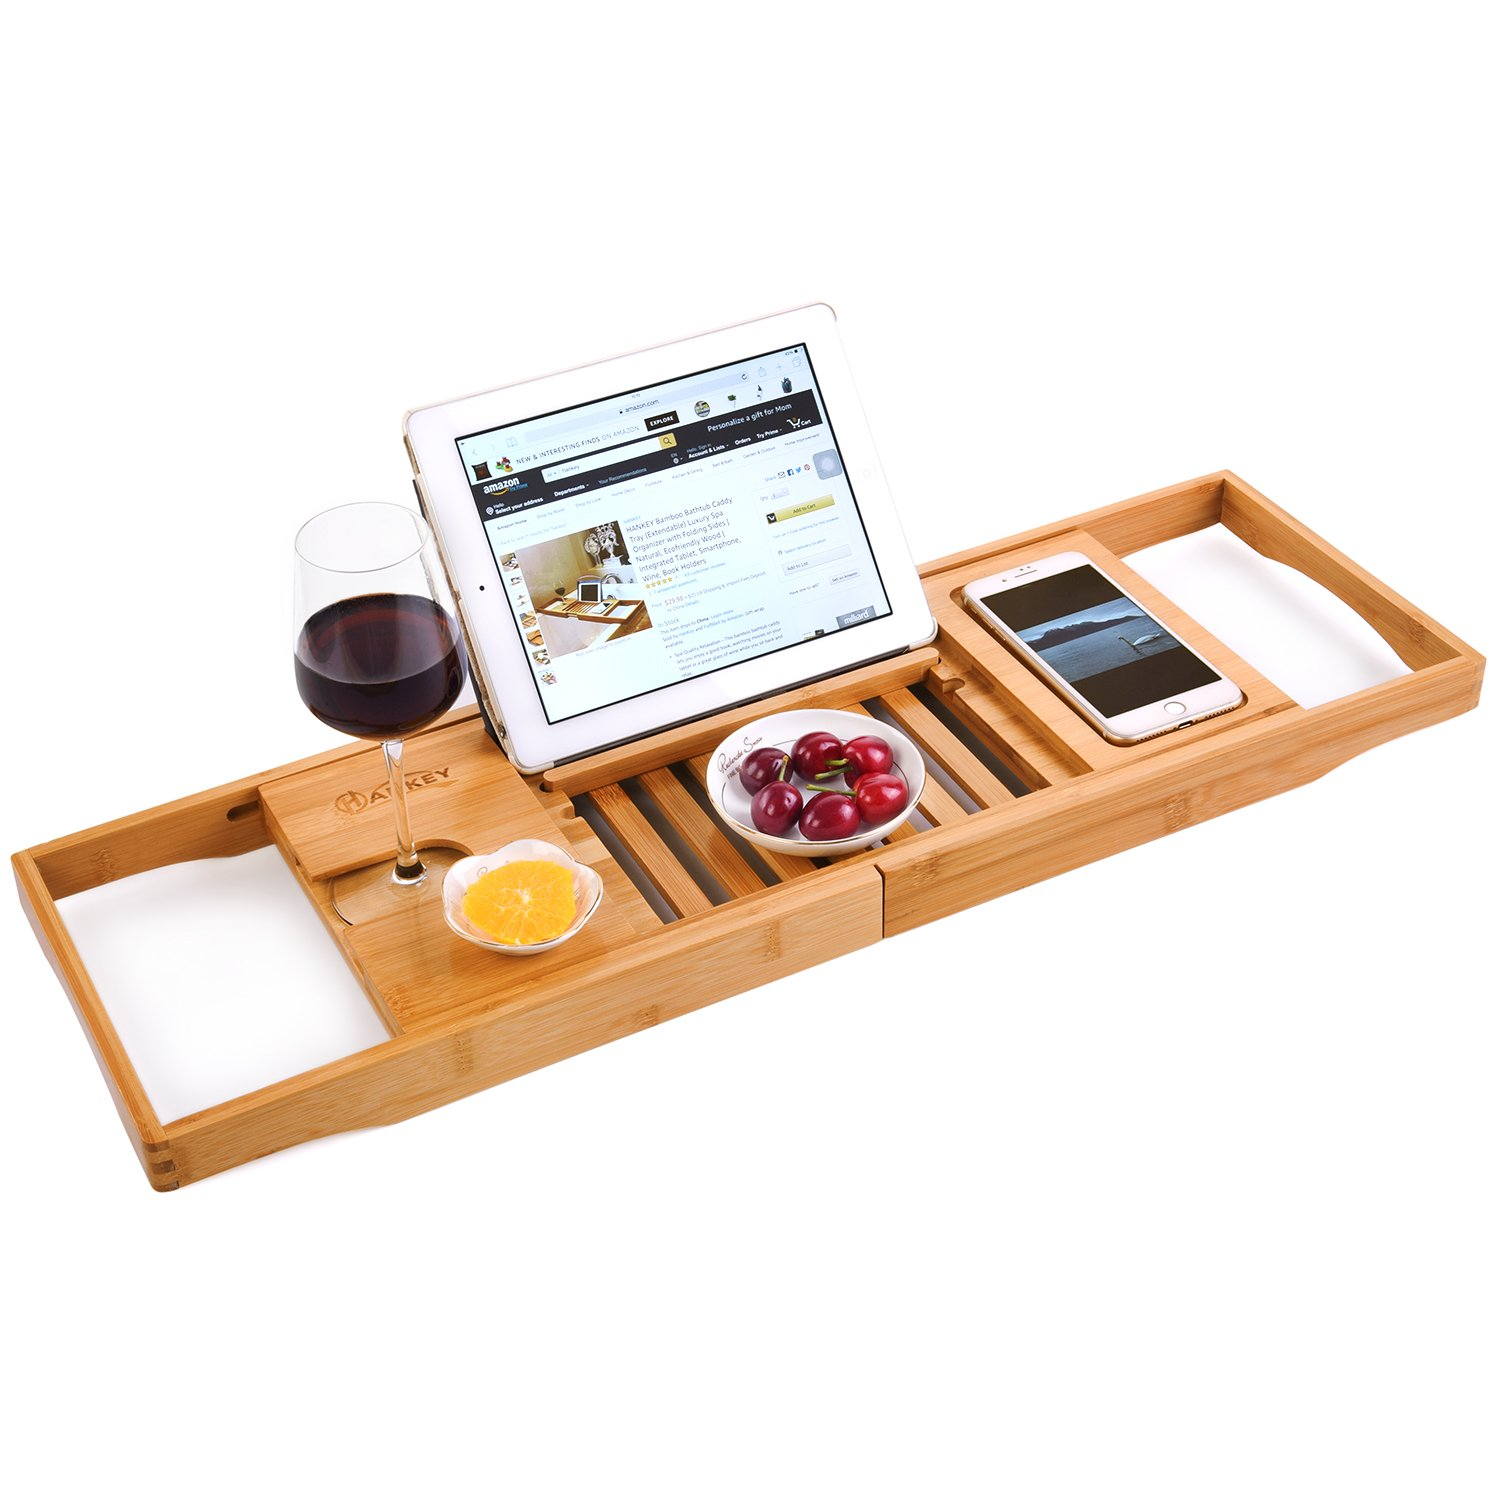 bath plans tray info amazon everythingbeauty bathtub ikea caddy wooden